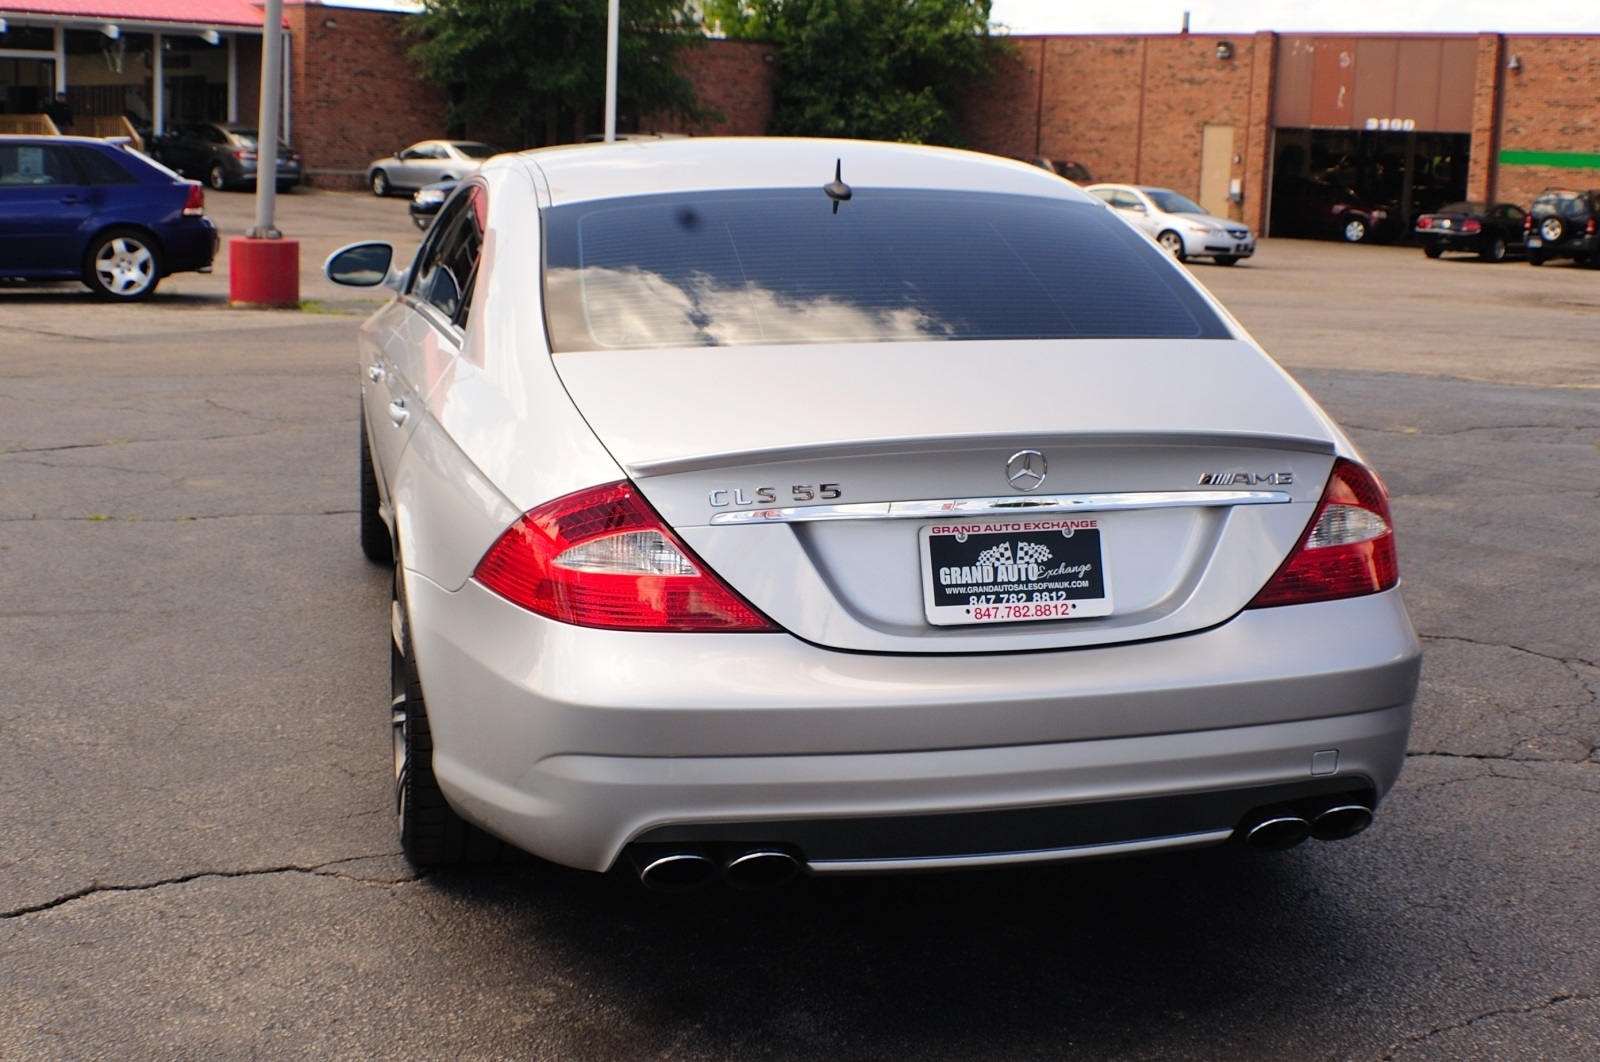 2006 Mercedes Benz CLS 55 AMG Silver Sedan Car Sale Buffalo Grove Deerfield Fox Lake